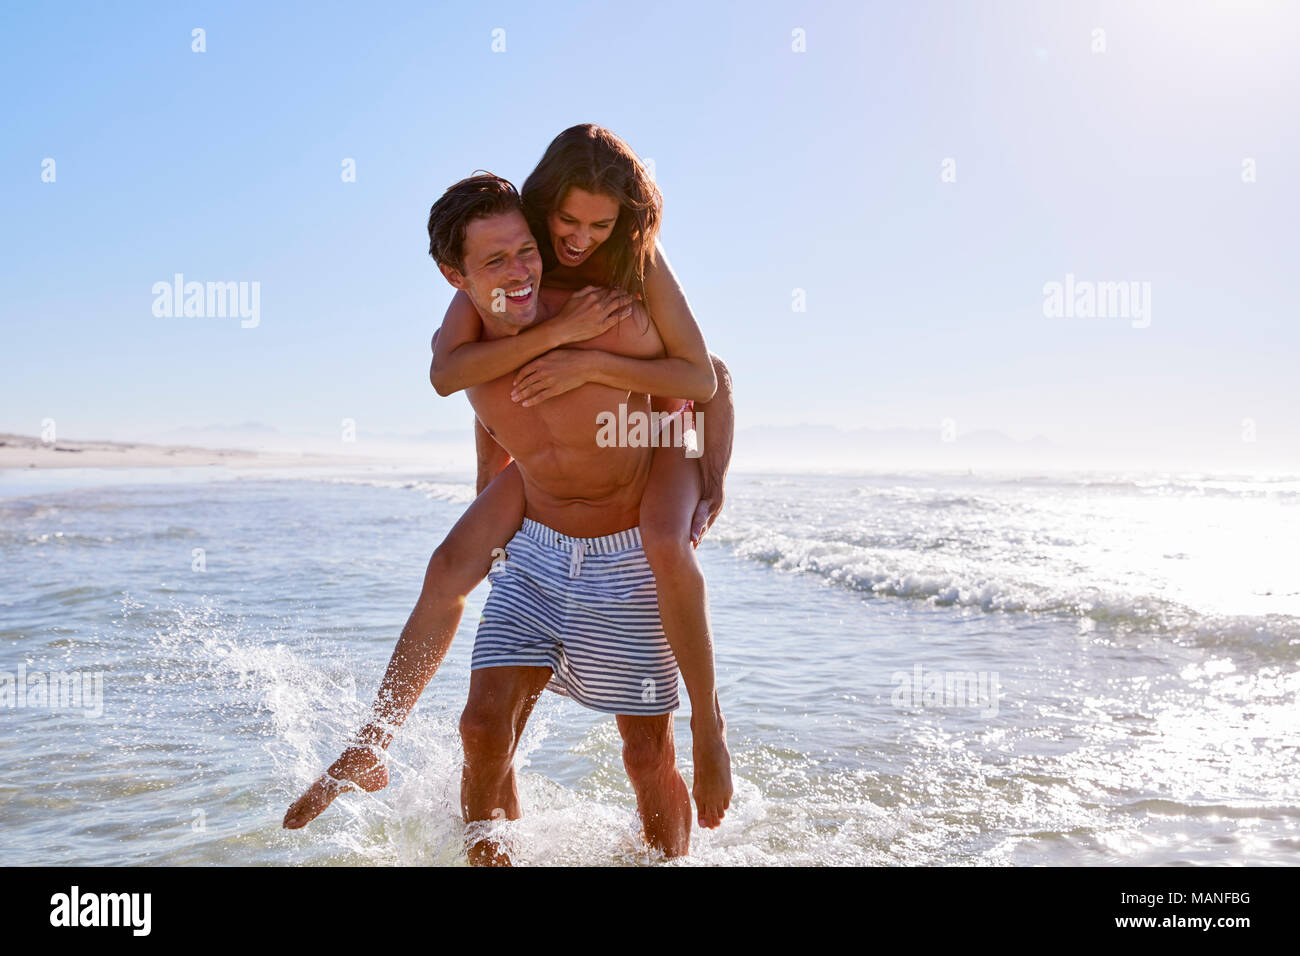 Man Giving Woman Piggyback On Summer Beach Vacation - Stock Image